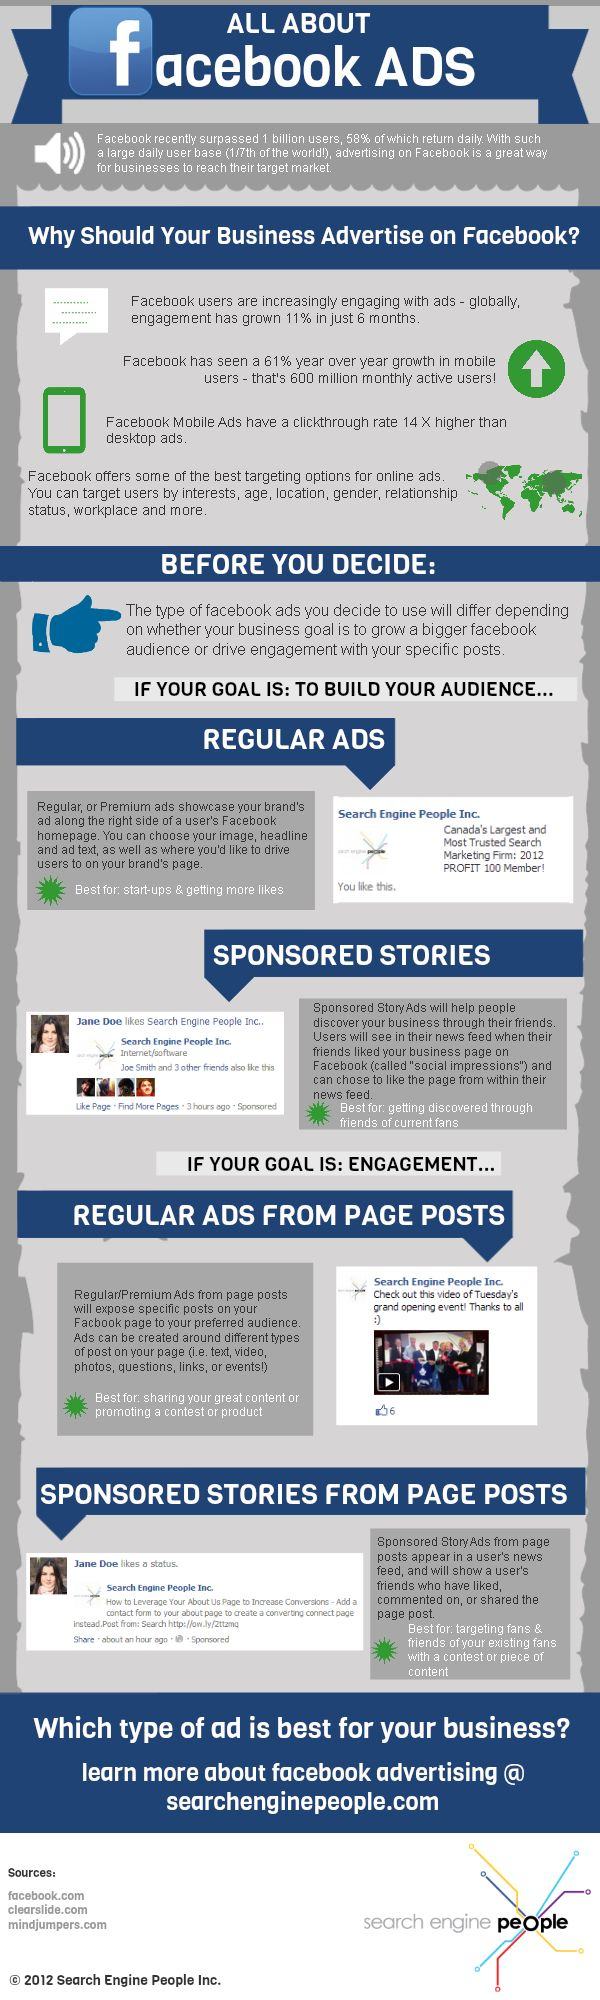 All about #Facebook ads